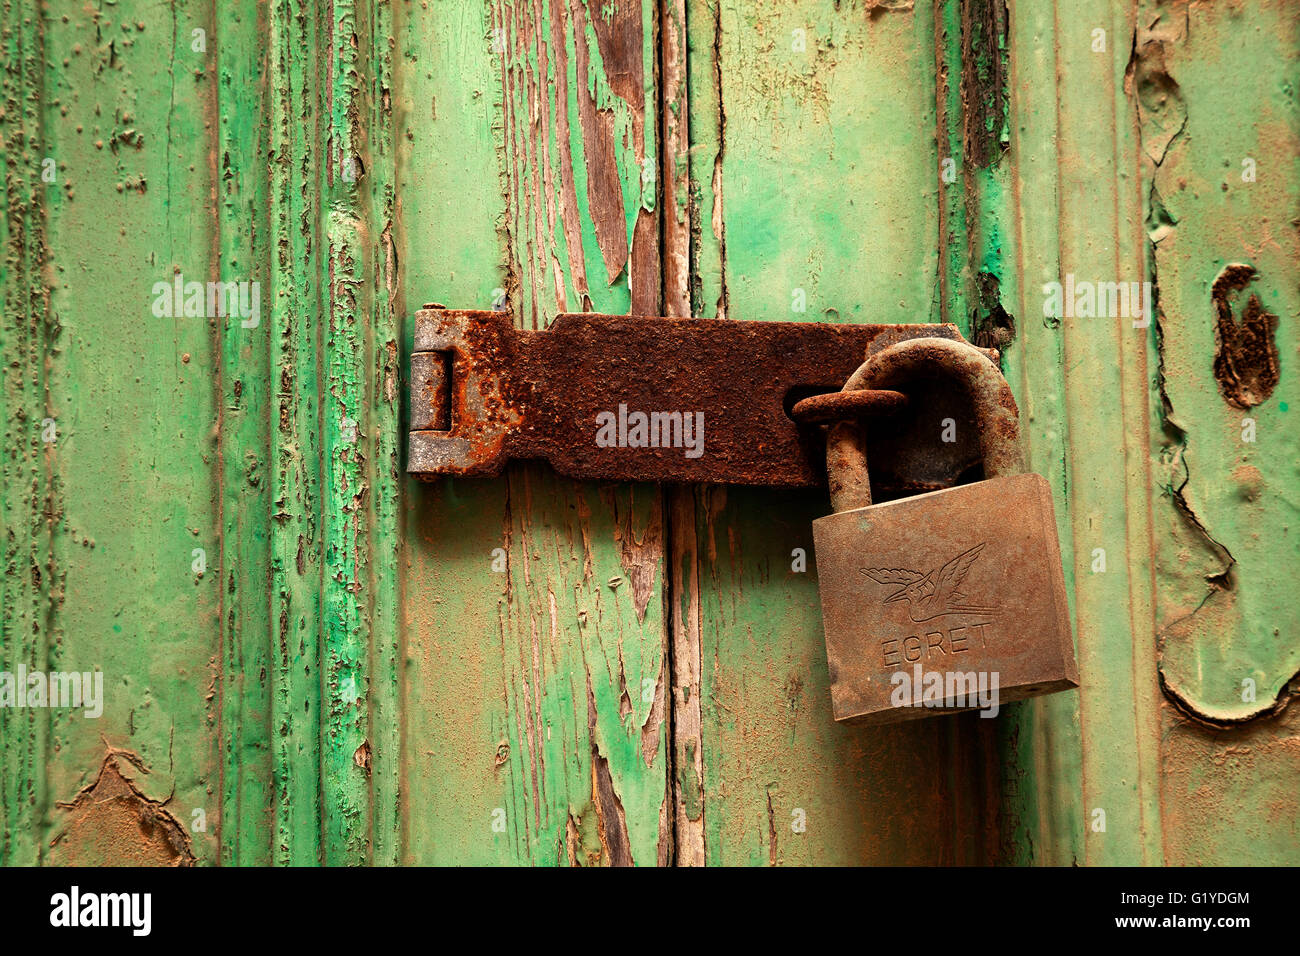 Deadbolt Stock Photos Amp Deadbolt Stock Images Alamy